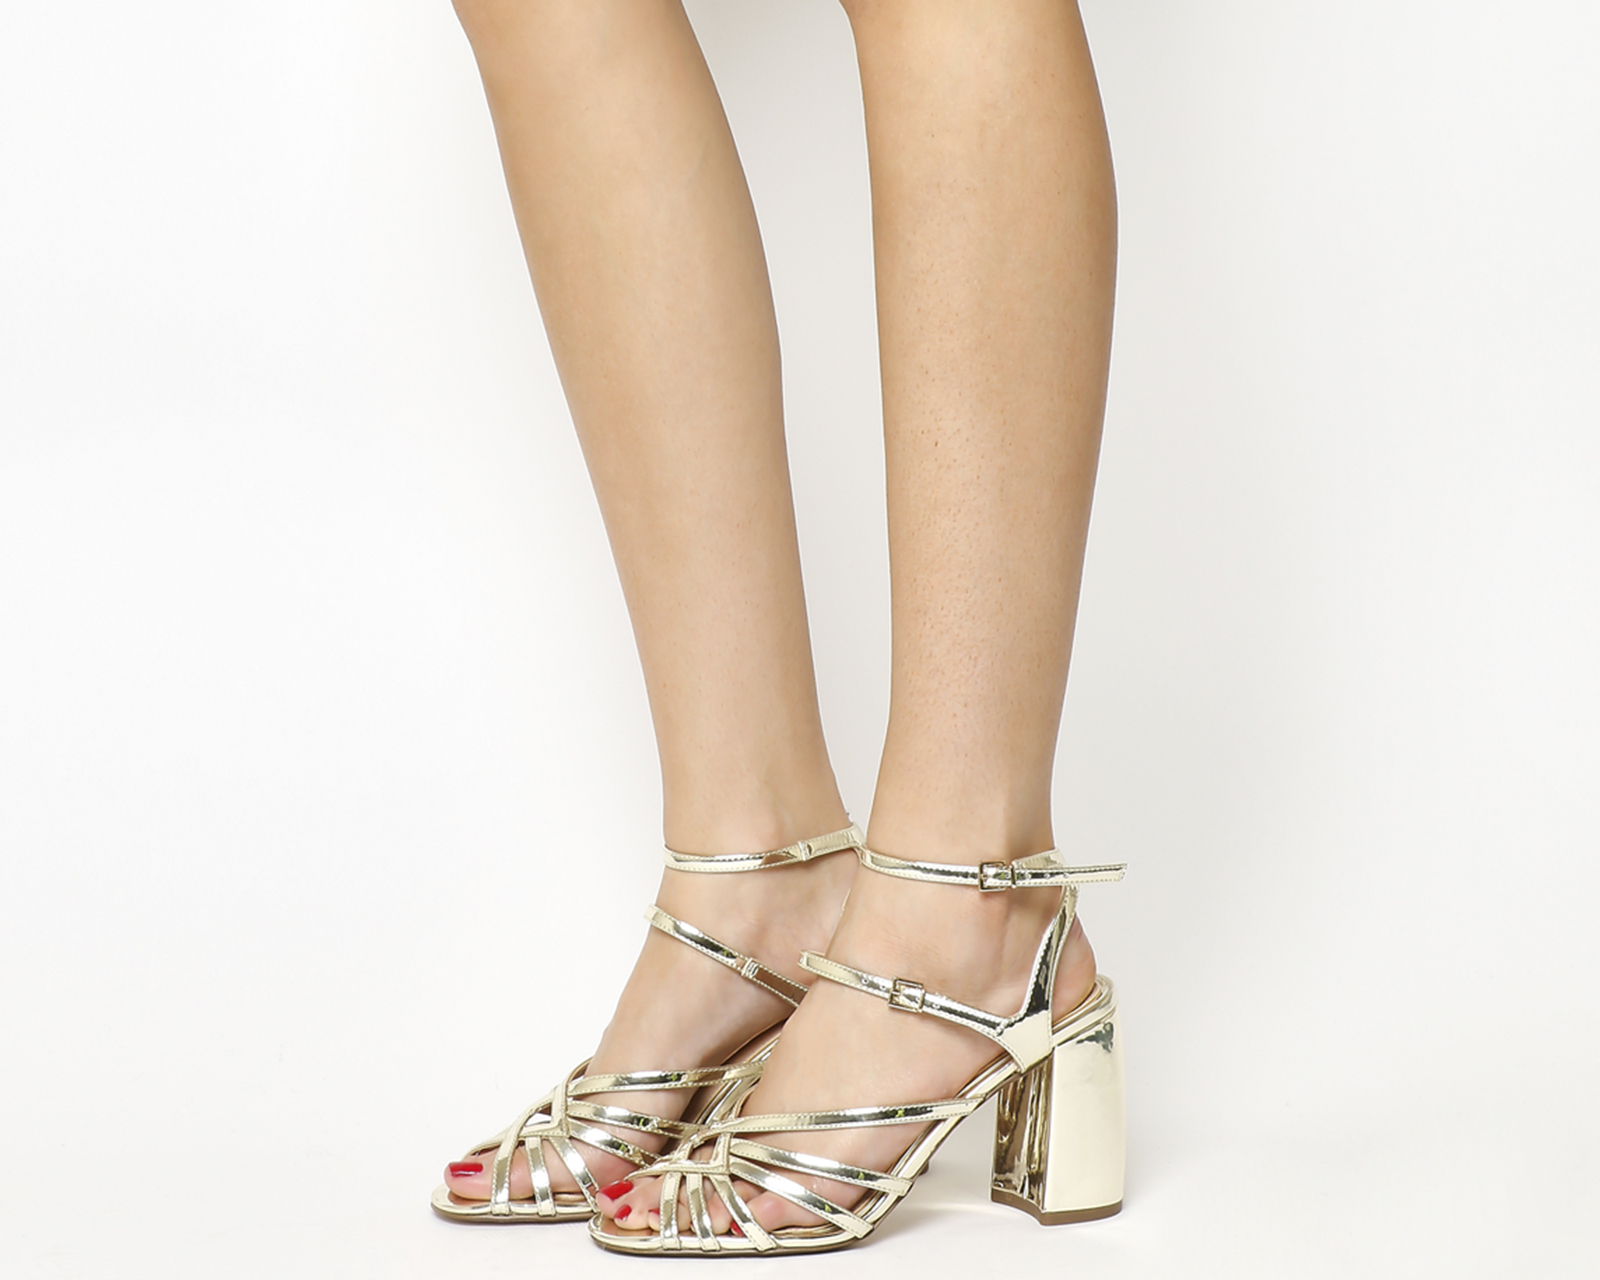 8b2a500e1e9b Sentinel Womens Office Hey Now Strappy Sandals Gold Heels